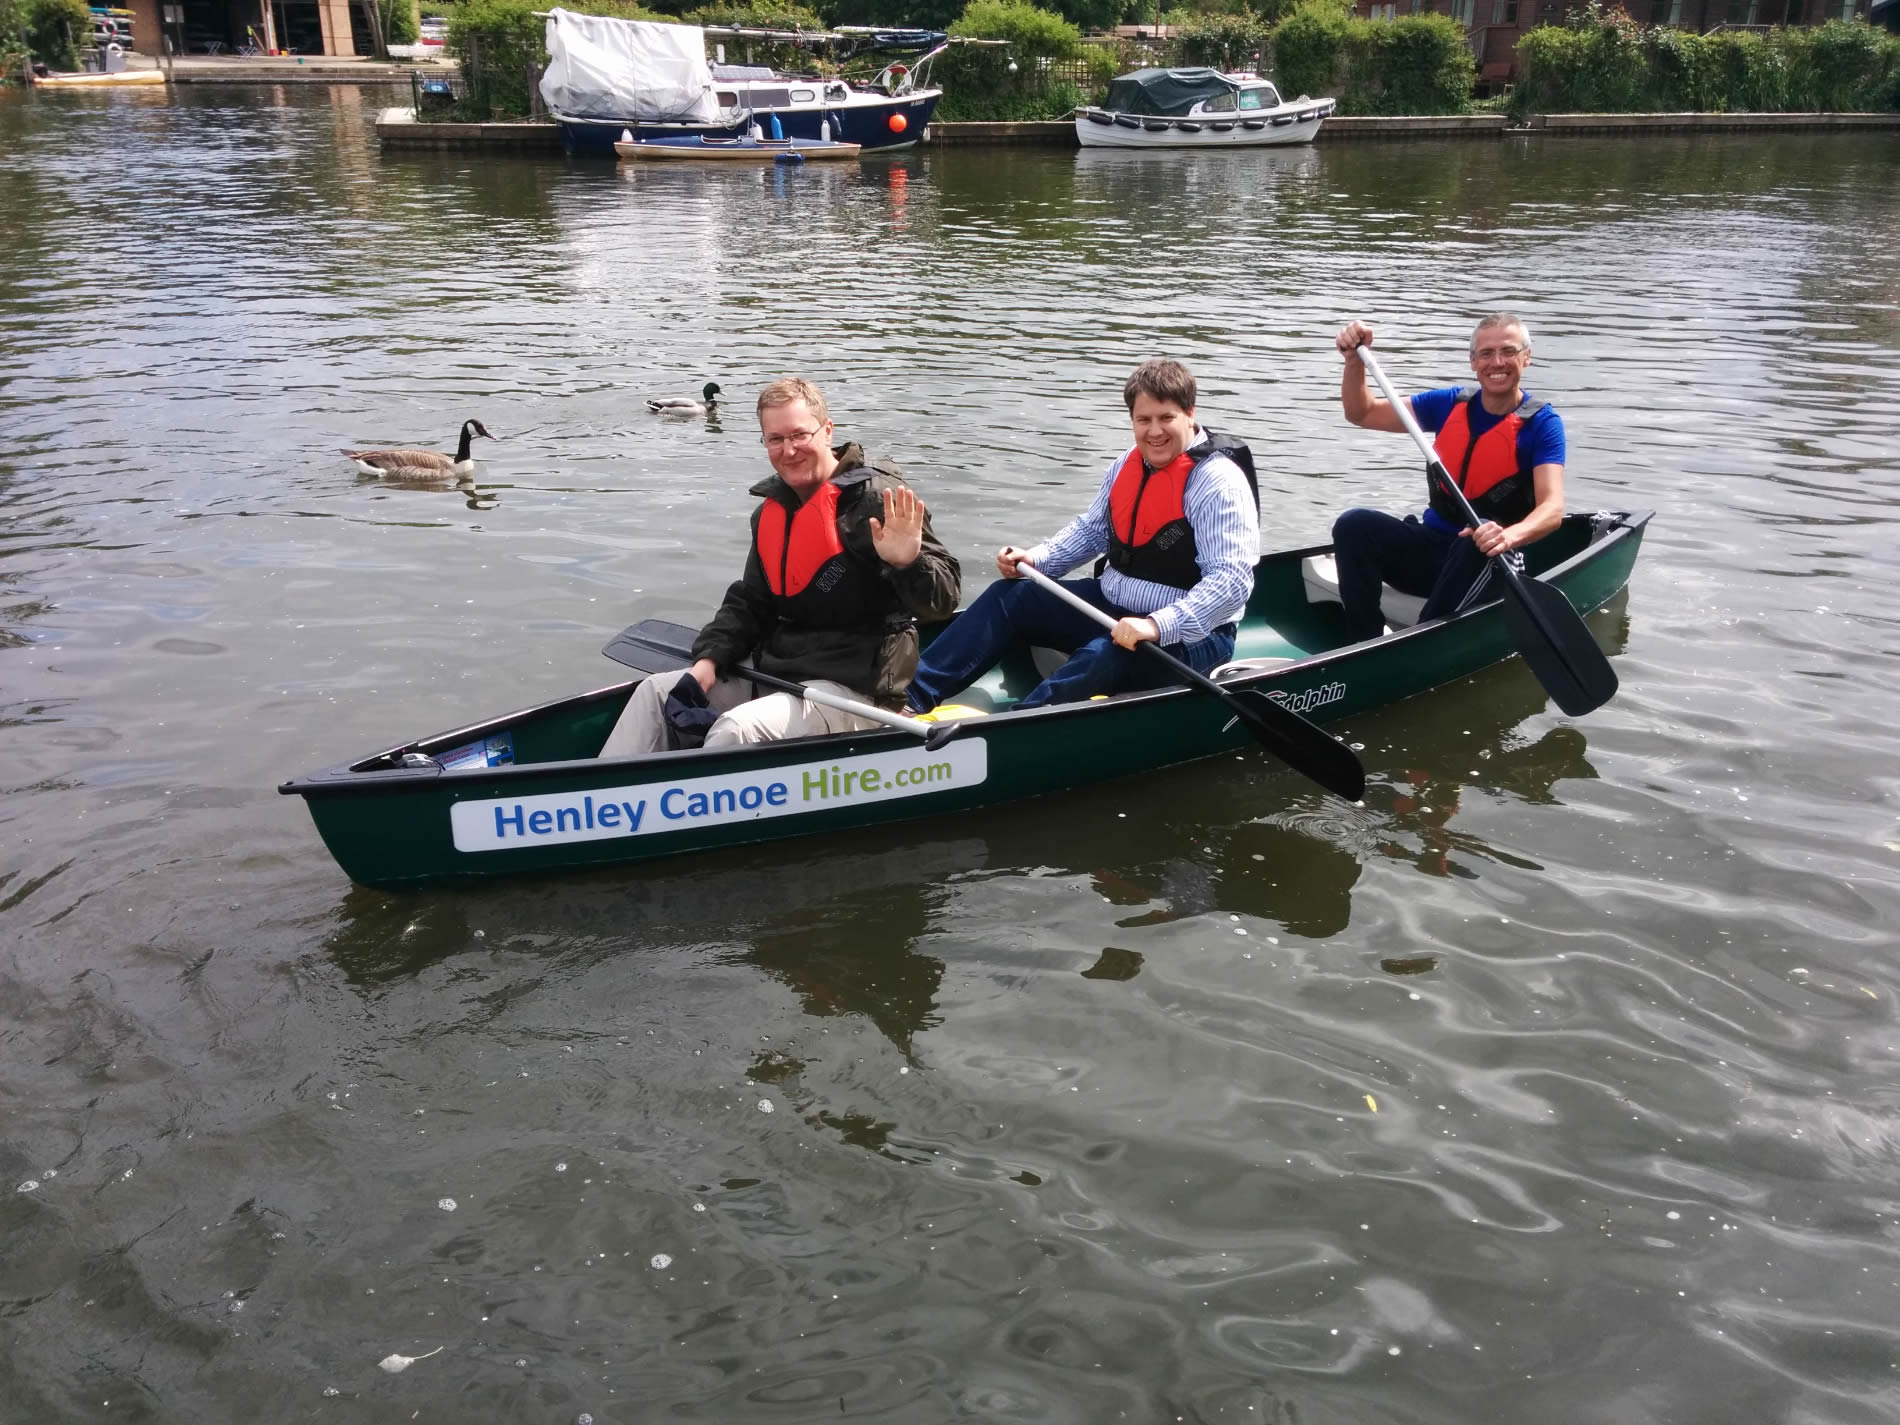 Half-Day Hire Henley Canoe Hire